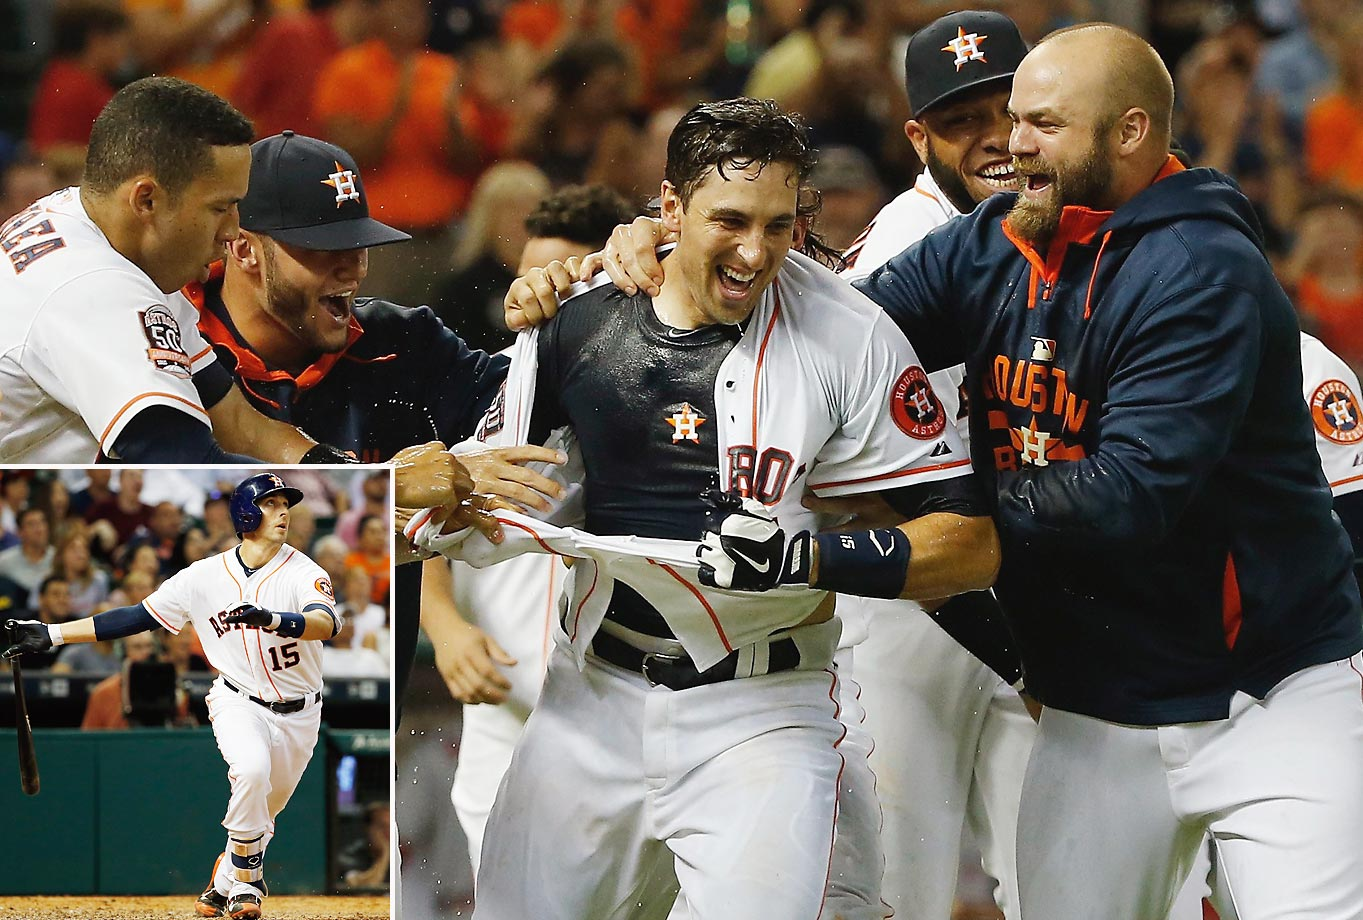 Jason Castro hit a three-run homer with two out in the ninth inning to give the Houston Astros a 3-0 victory and a three-game sweep of the Los Angeles Angels on July 30.